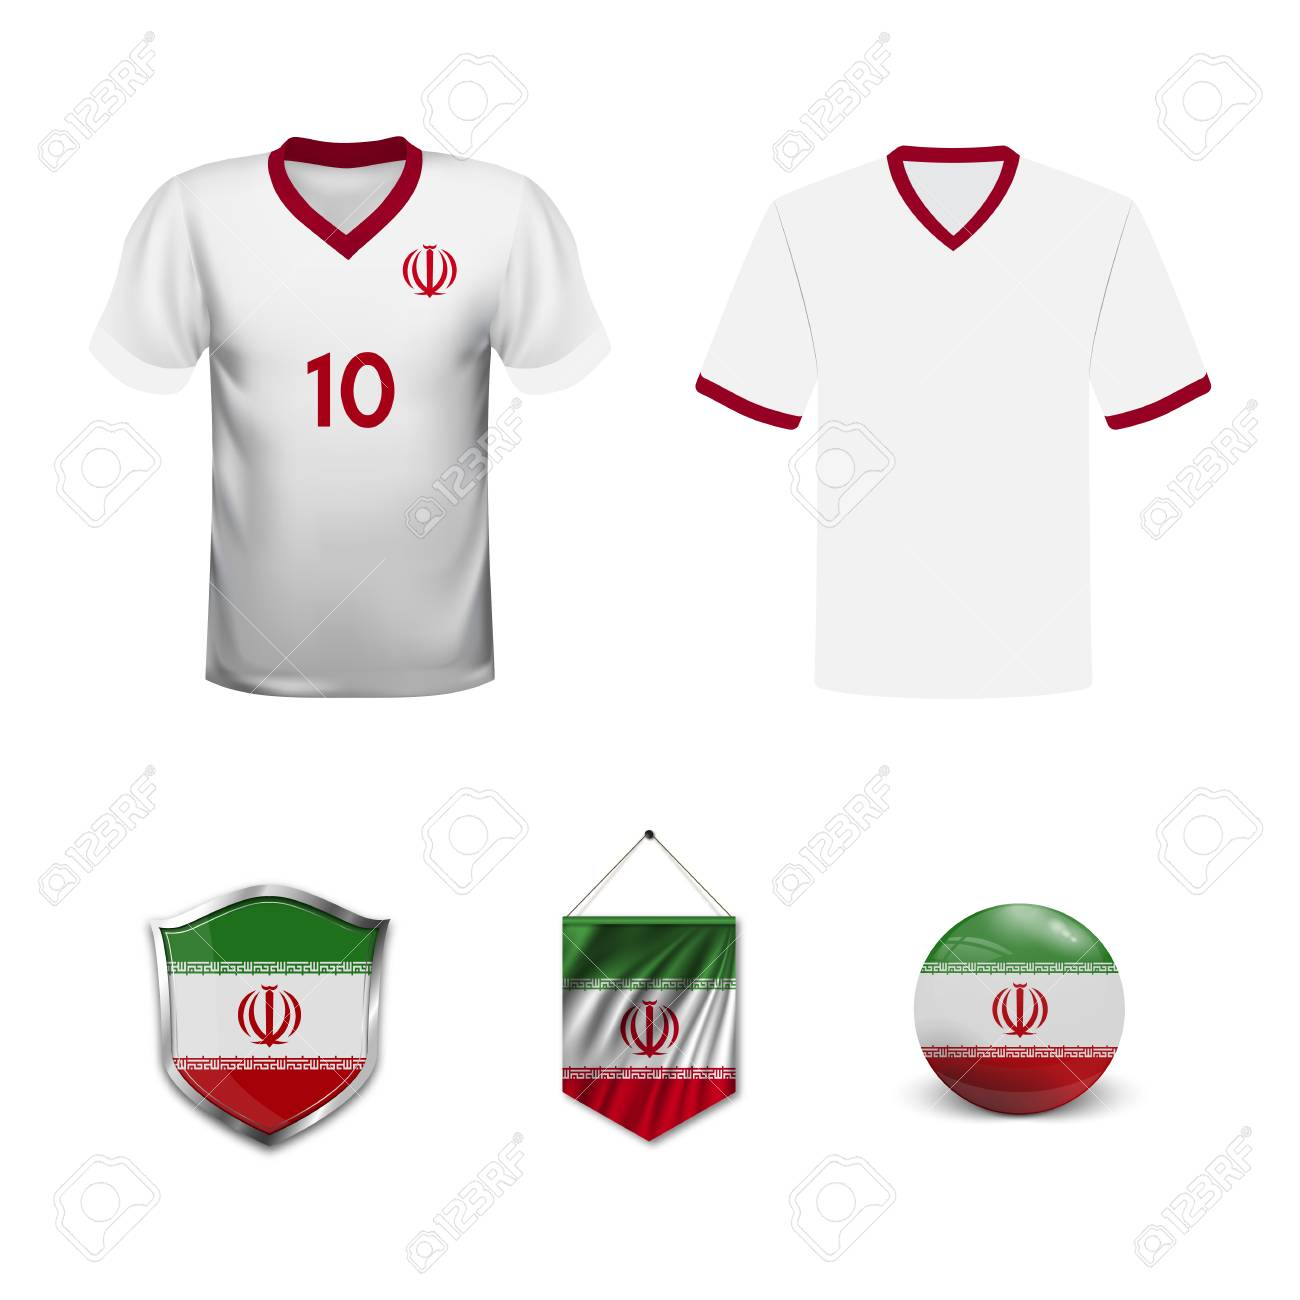 a729a3e96 Set of T-shirts and flags of the national team of Iran. Vector illustration